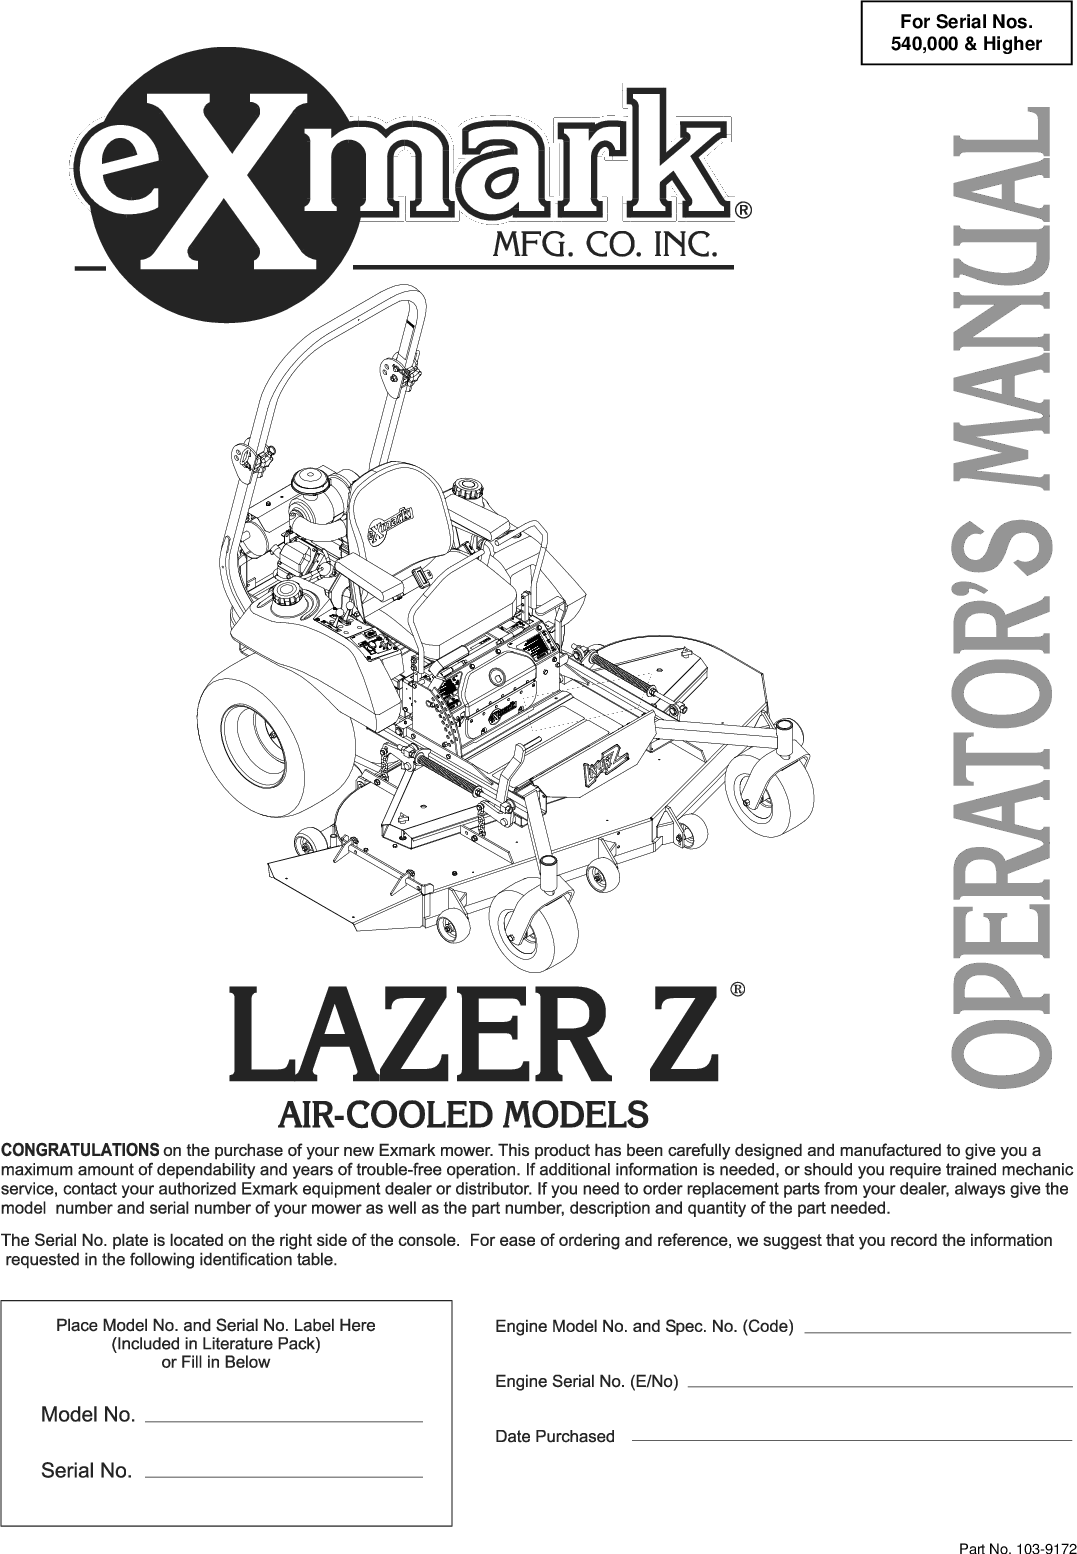 Exmark Lazer Z Hp 103 9172 User Manual To The 9a02d47a 8a63 470c 9237 Ddd41ea53d64